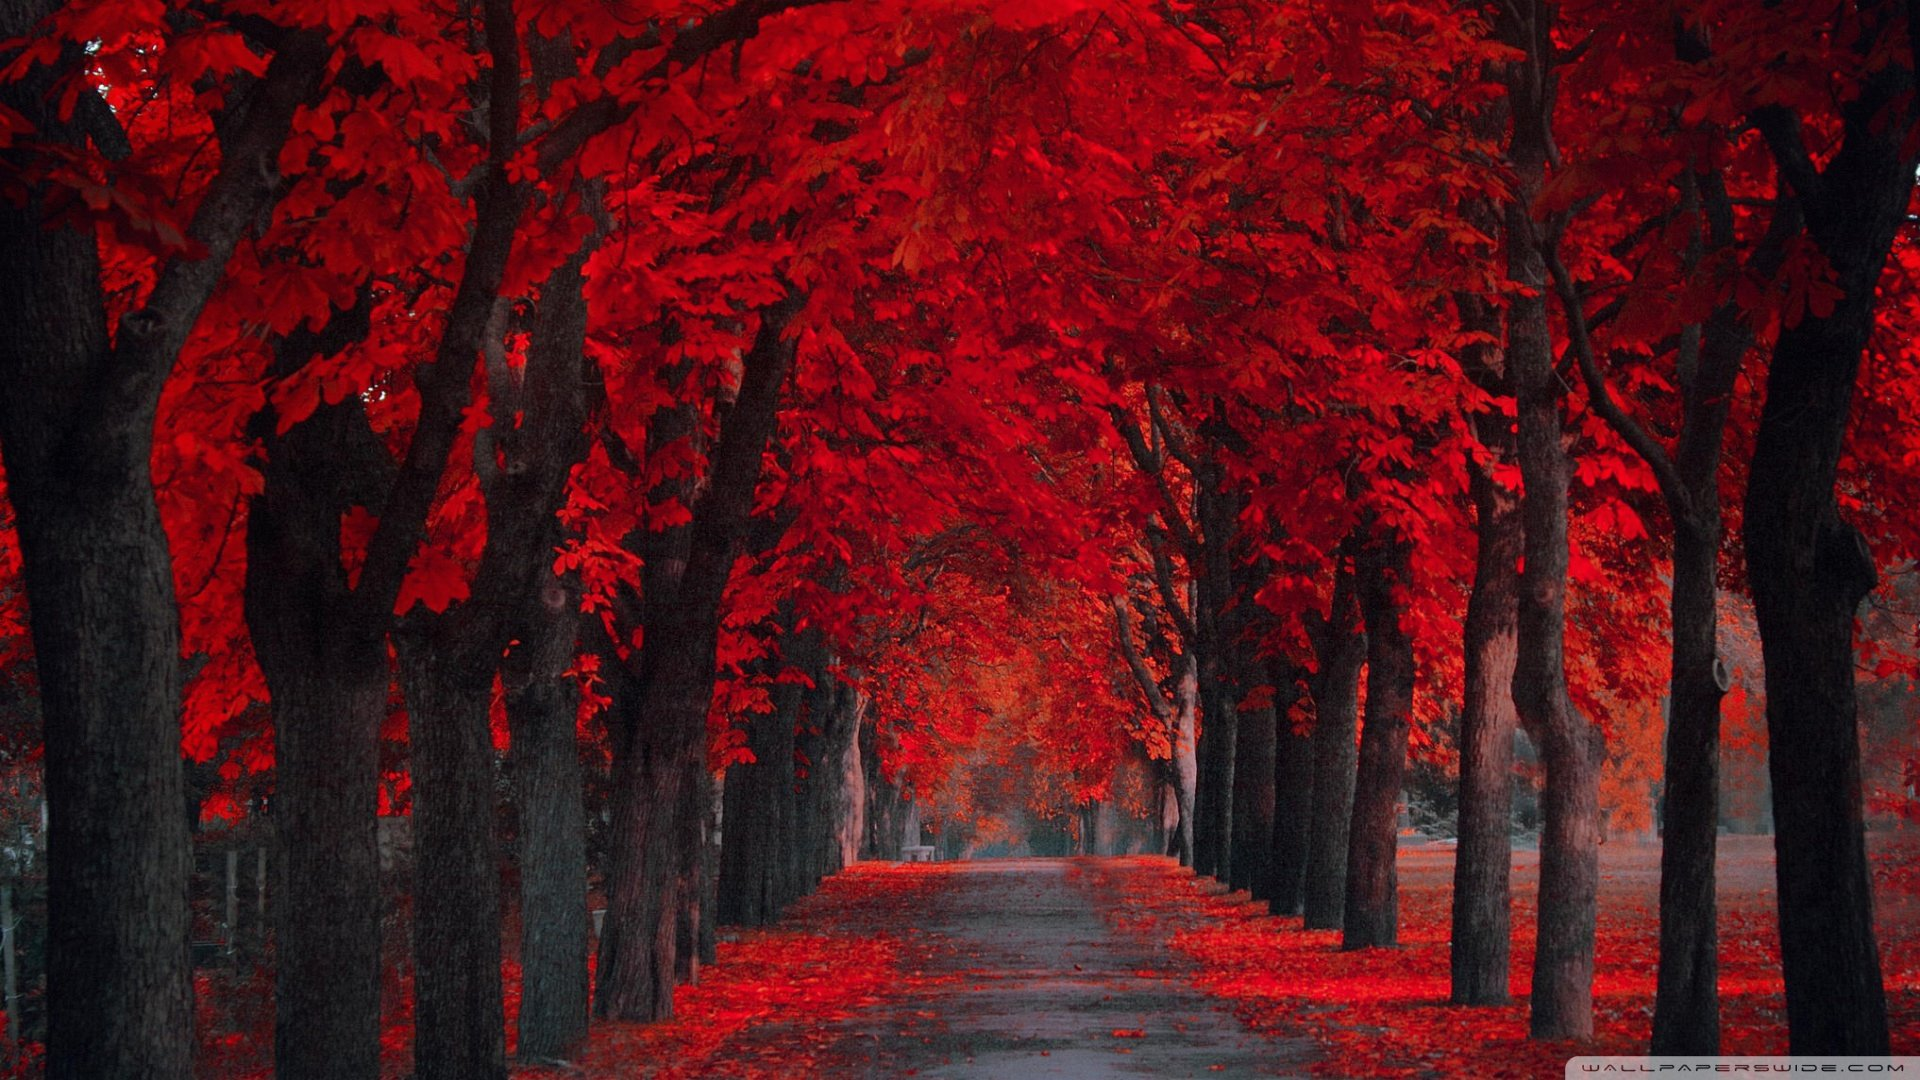 Red Leaves Fall Backgrounds, HQ, Kenyatta Miltenberger